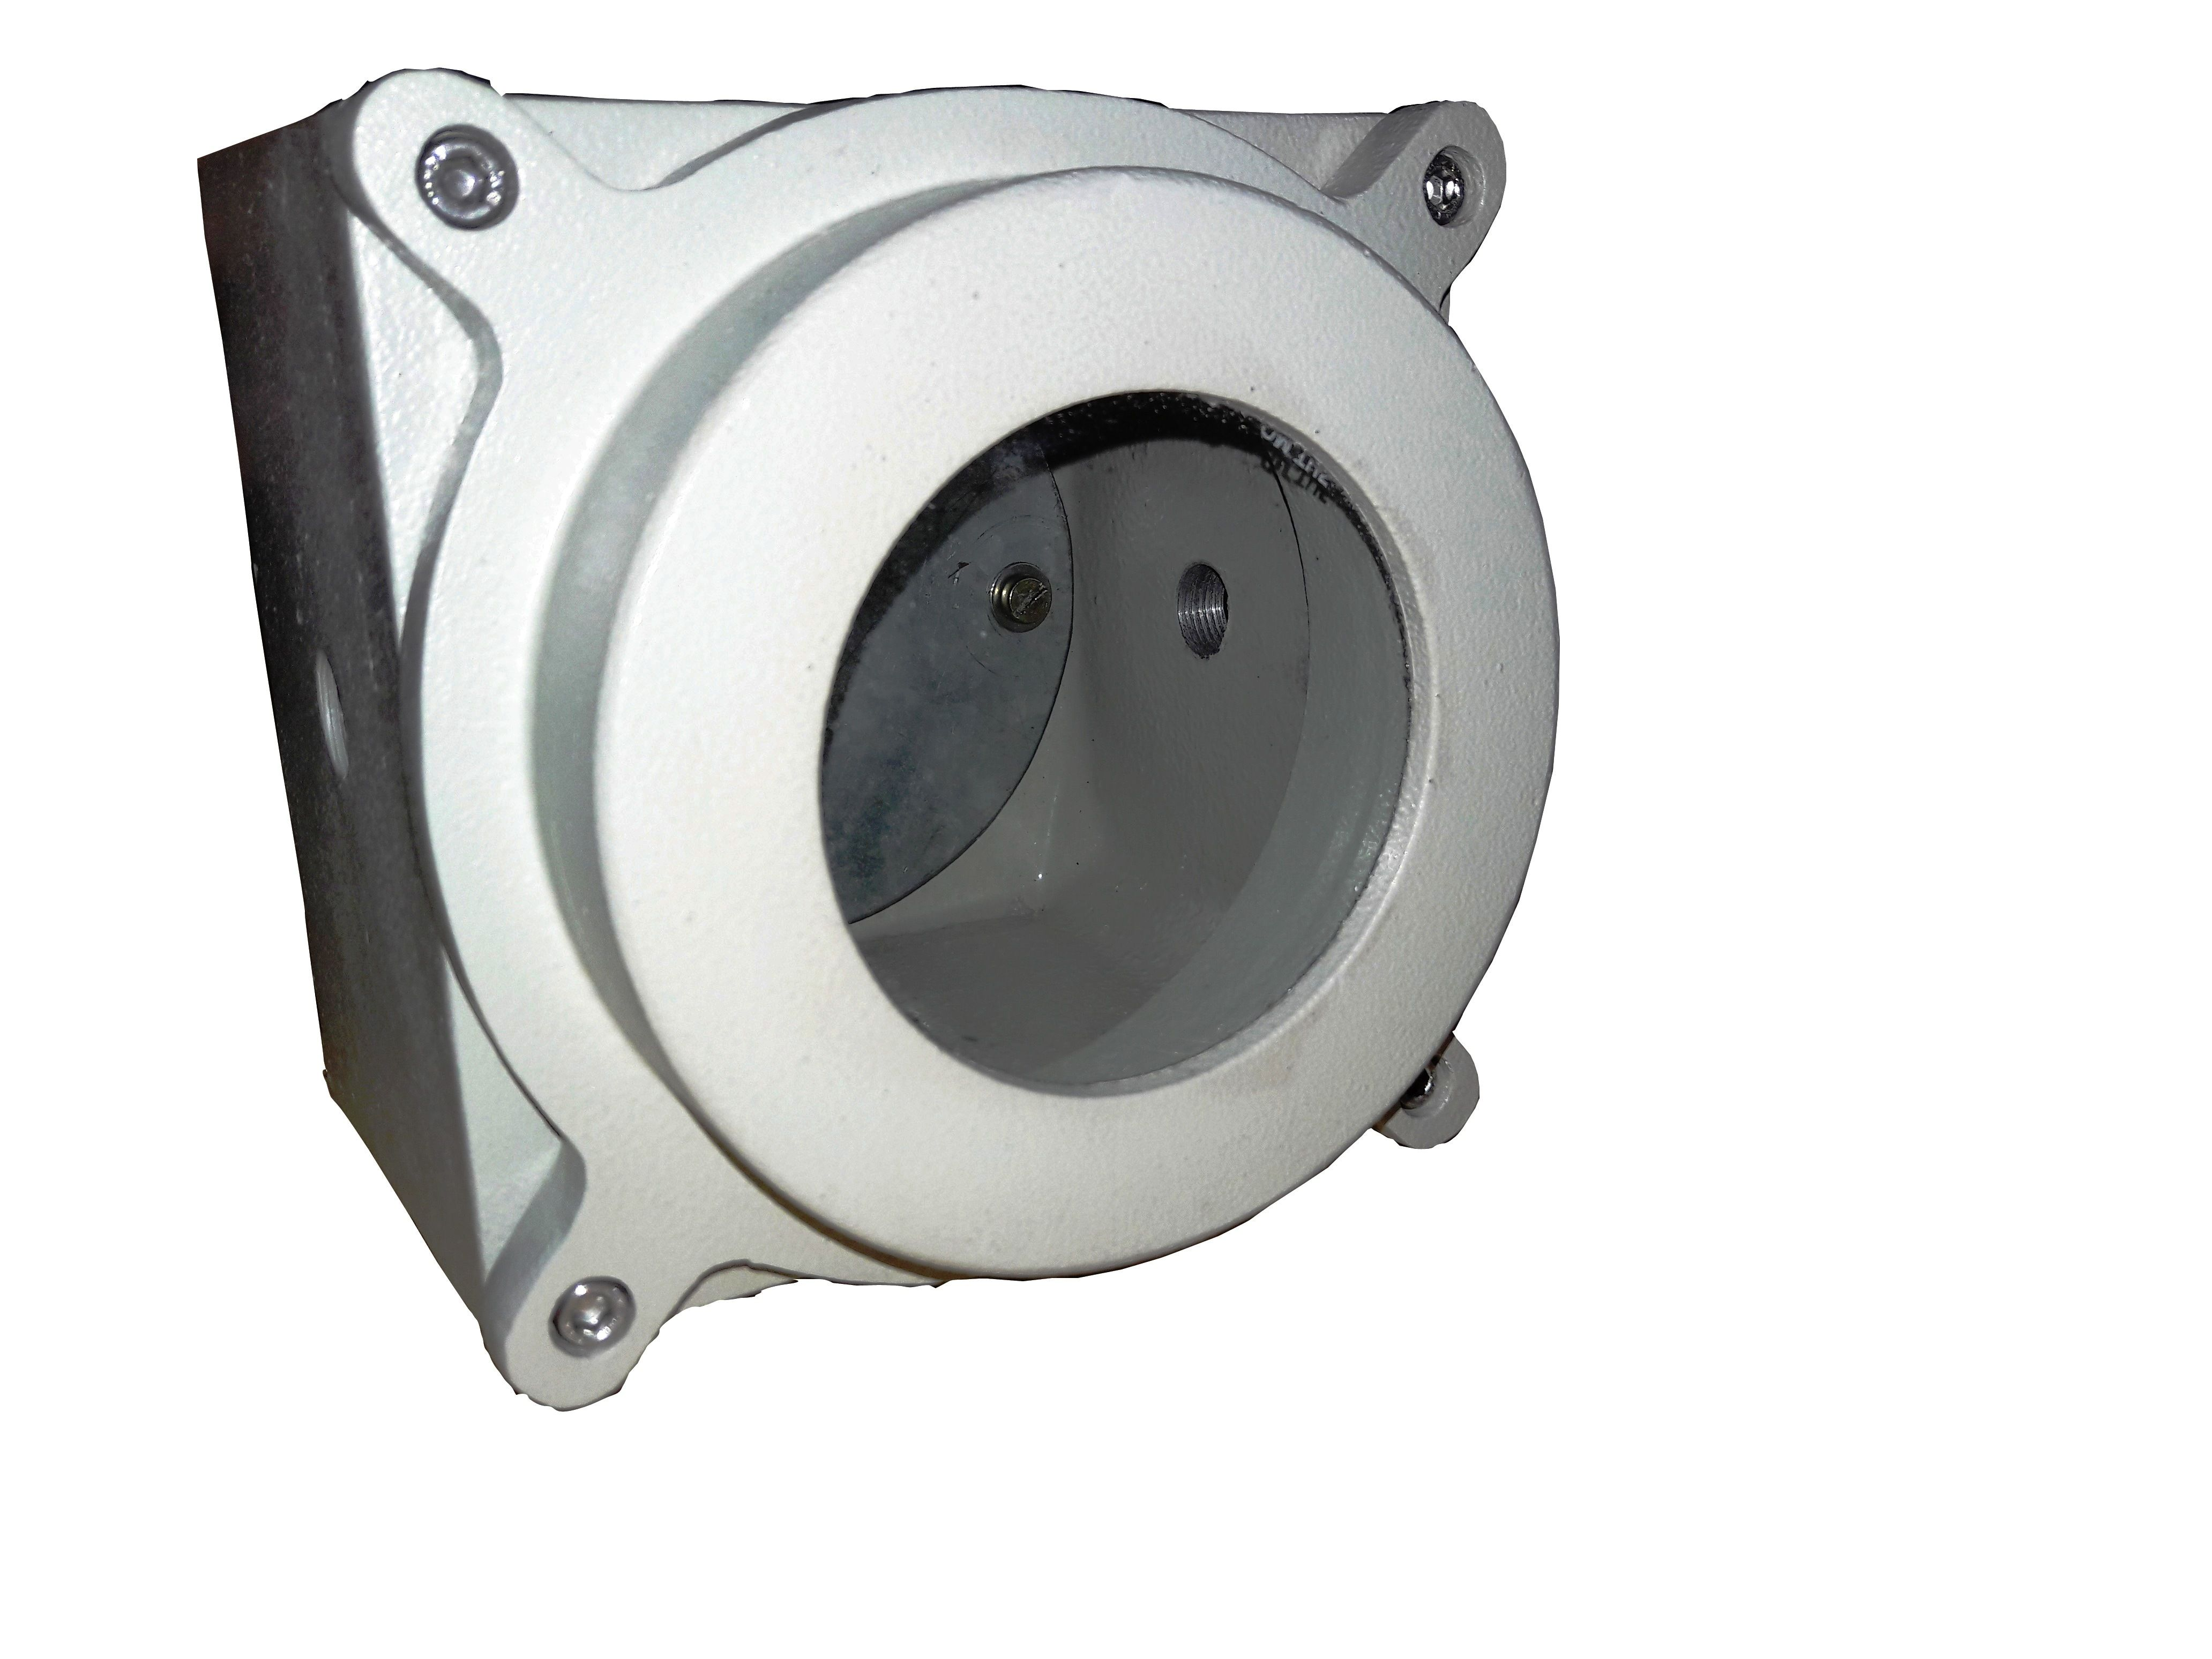 We are a notable Manufacturer, Exporter and Supplier of Flameproof